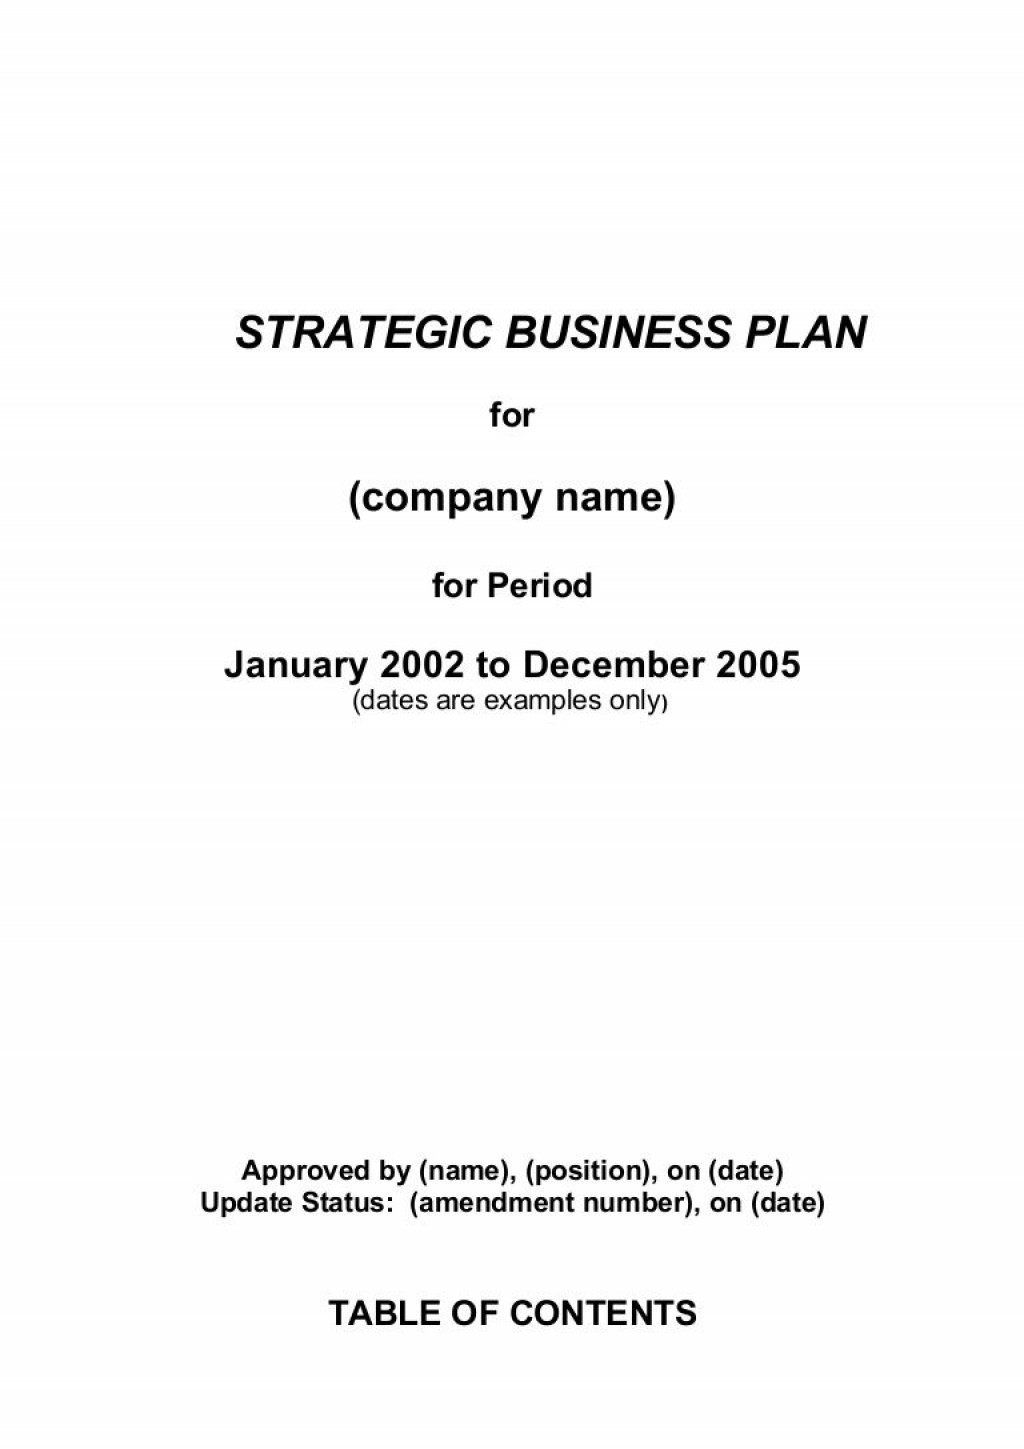 000 Simple Strategic Busines Plan Template Highest Quality  Templates Free ExampleLarge